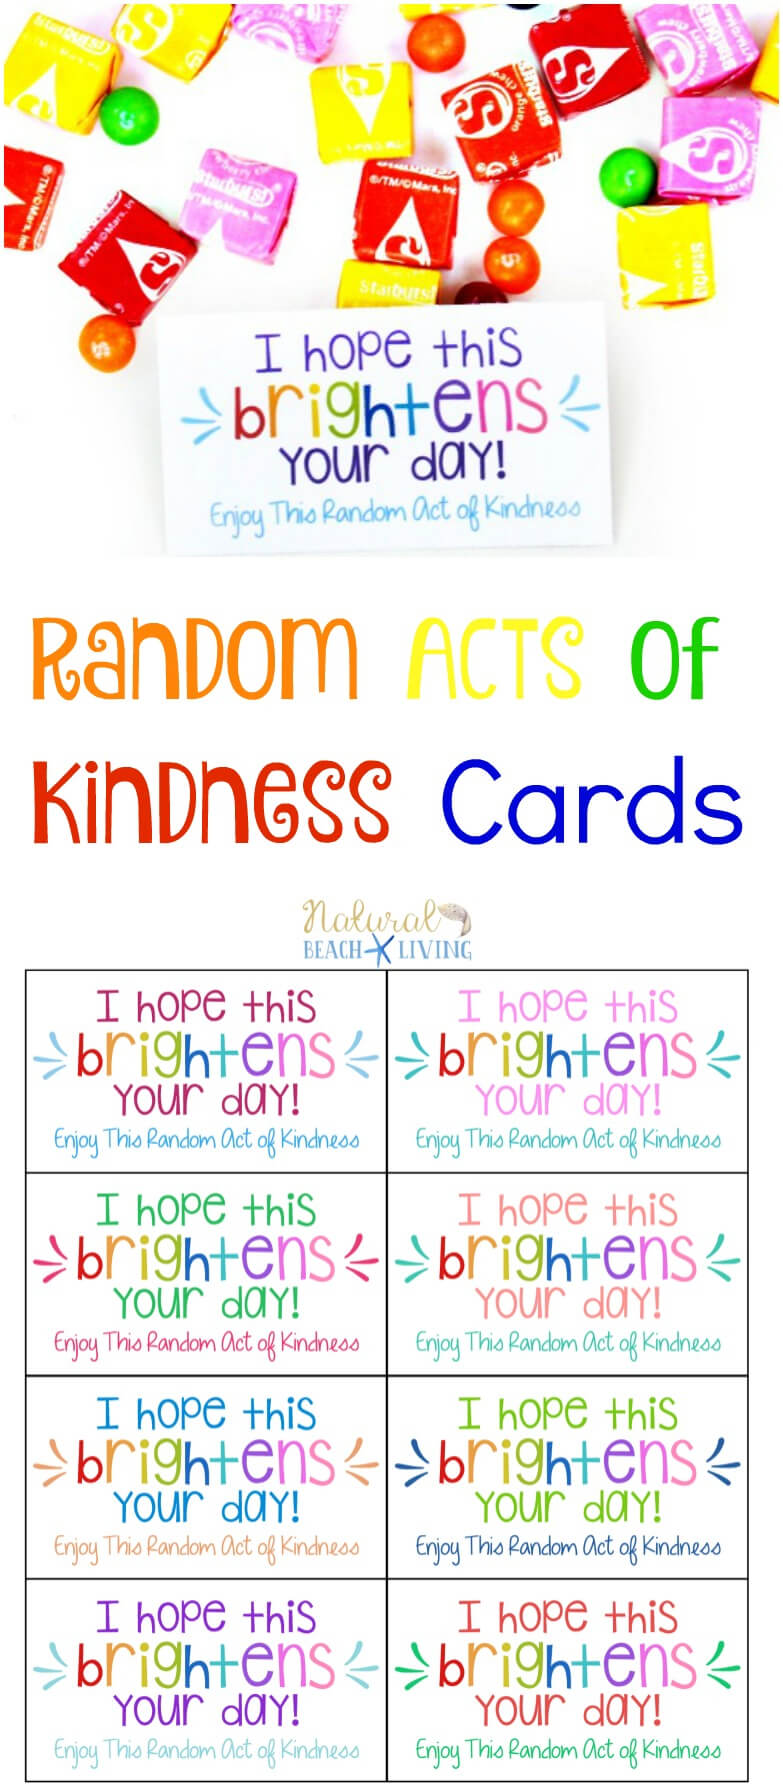 The Best Random Acts Of Kindness Printable Cards Free Throughout Random Acts Of Kindness Cards Templates